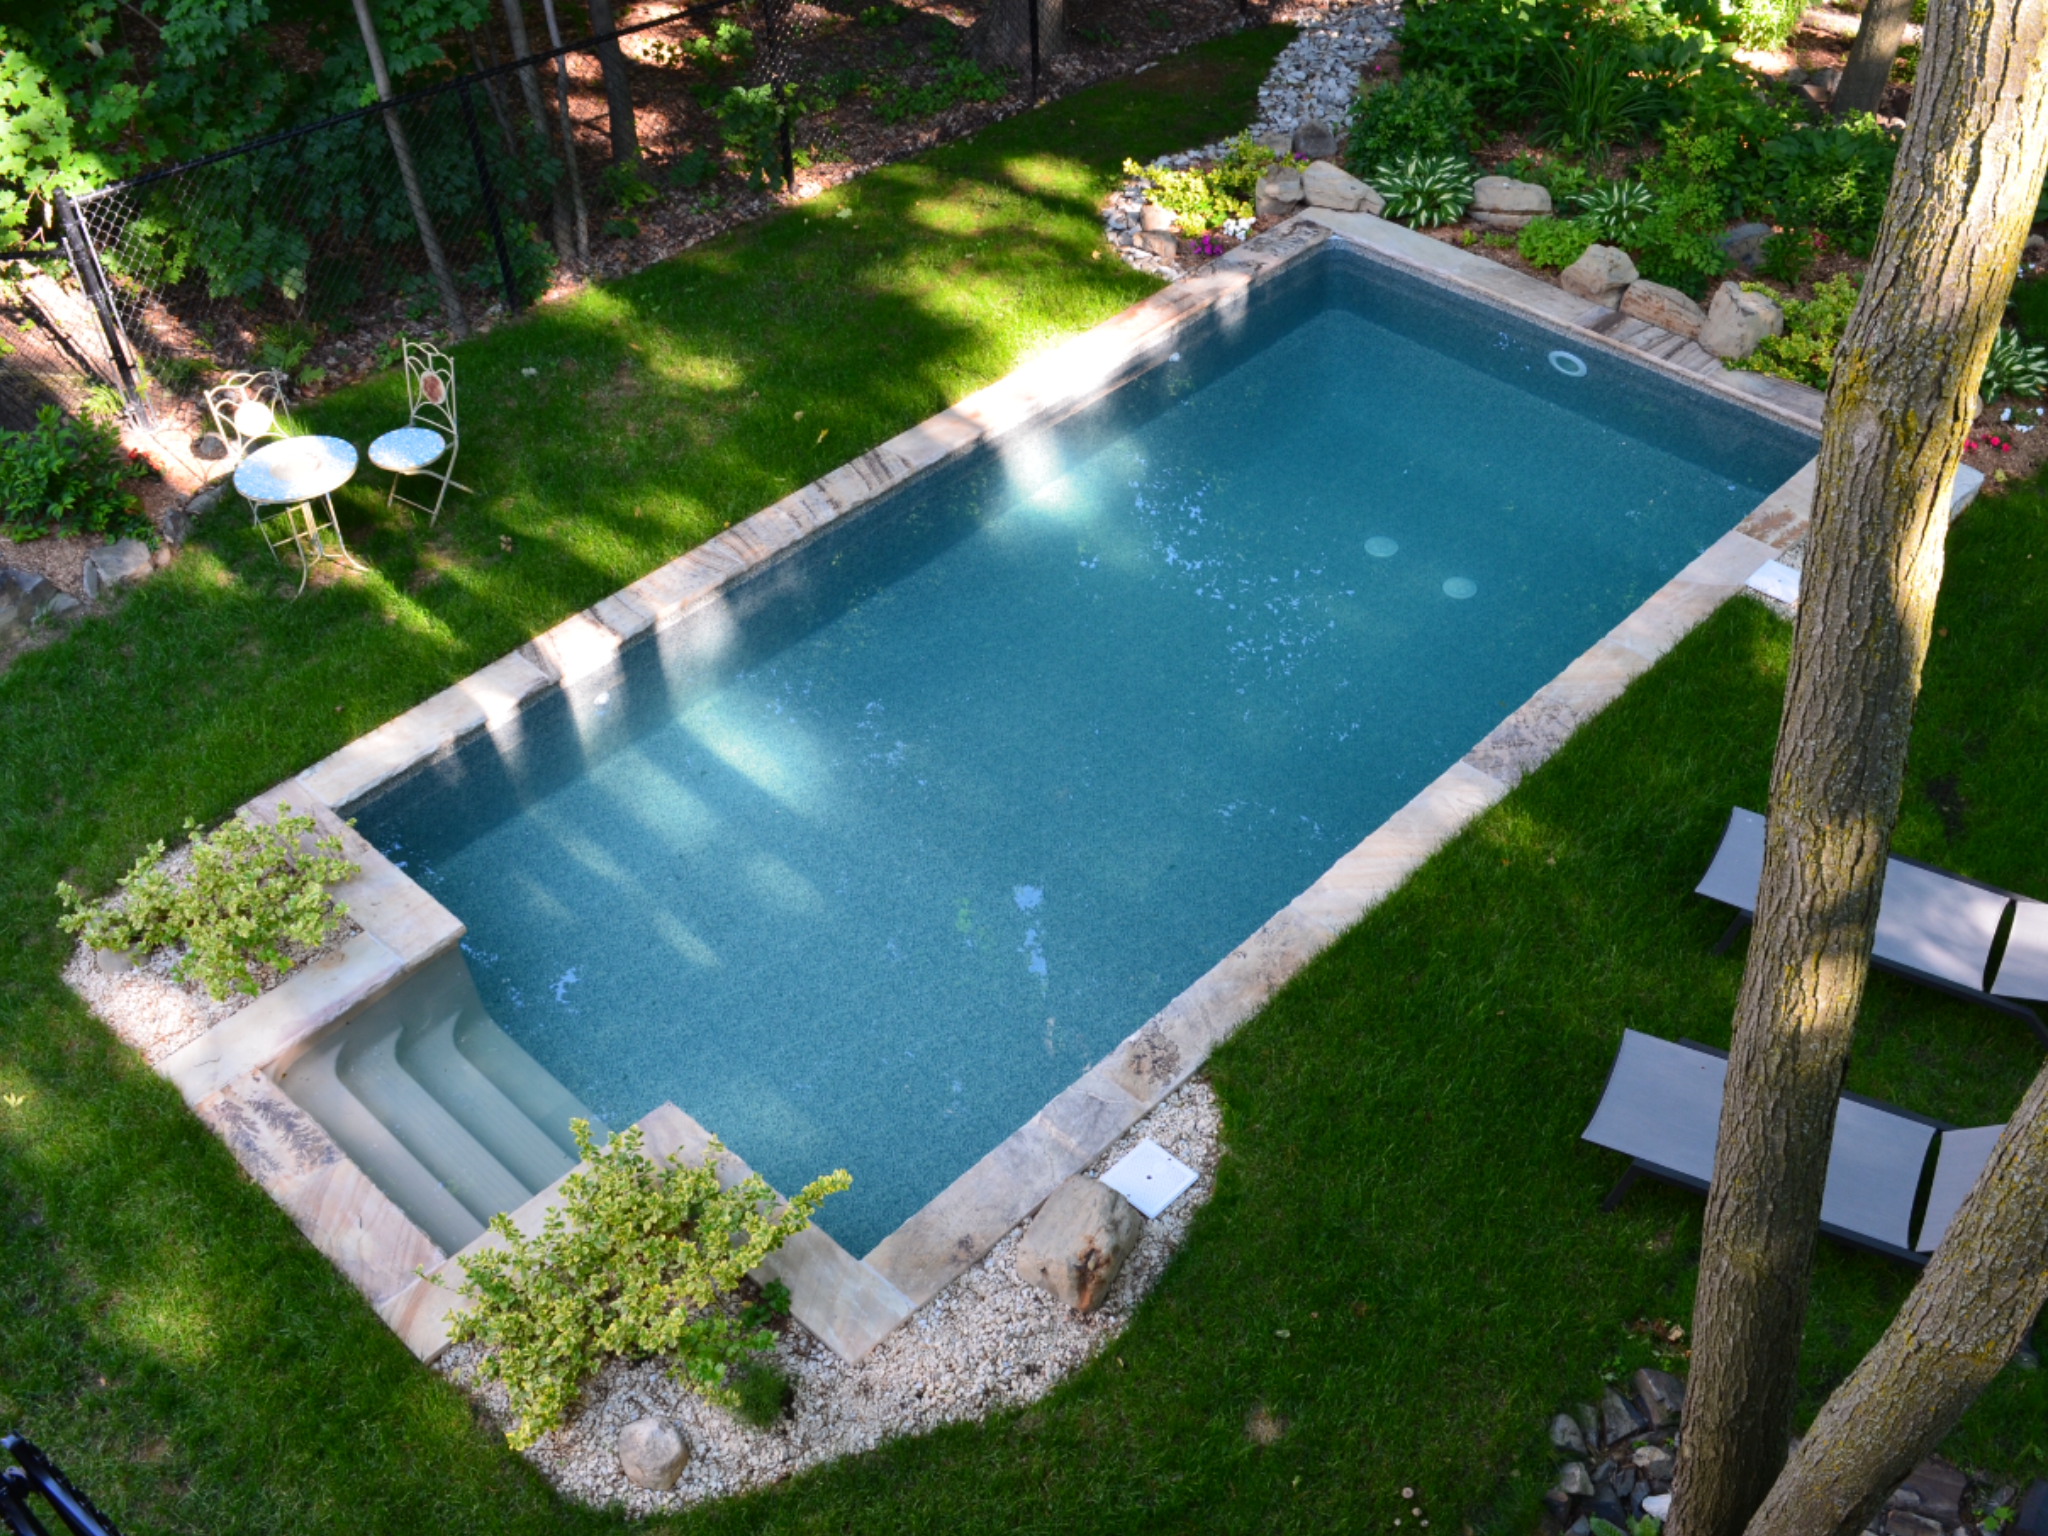 amenagement exterieur piscine creusee wz57 jornalagora With superb amenagement paysager avec piscine creusee 6 conception fabrication et installation de patio autour d